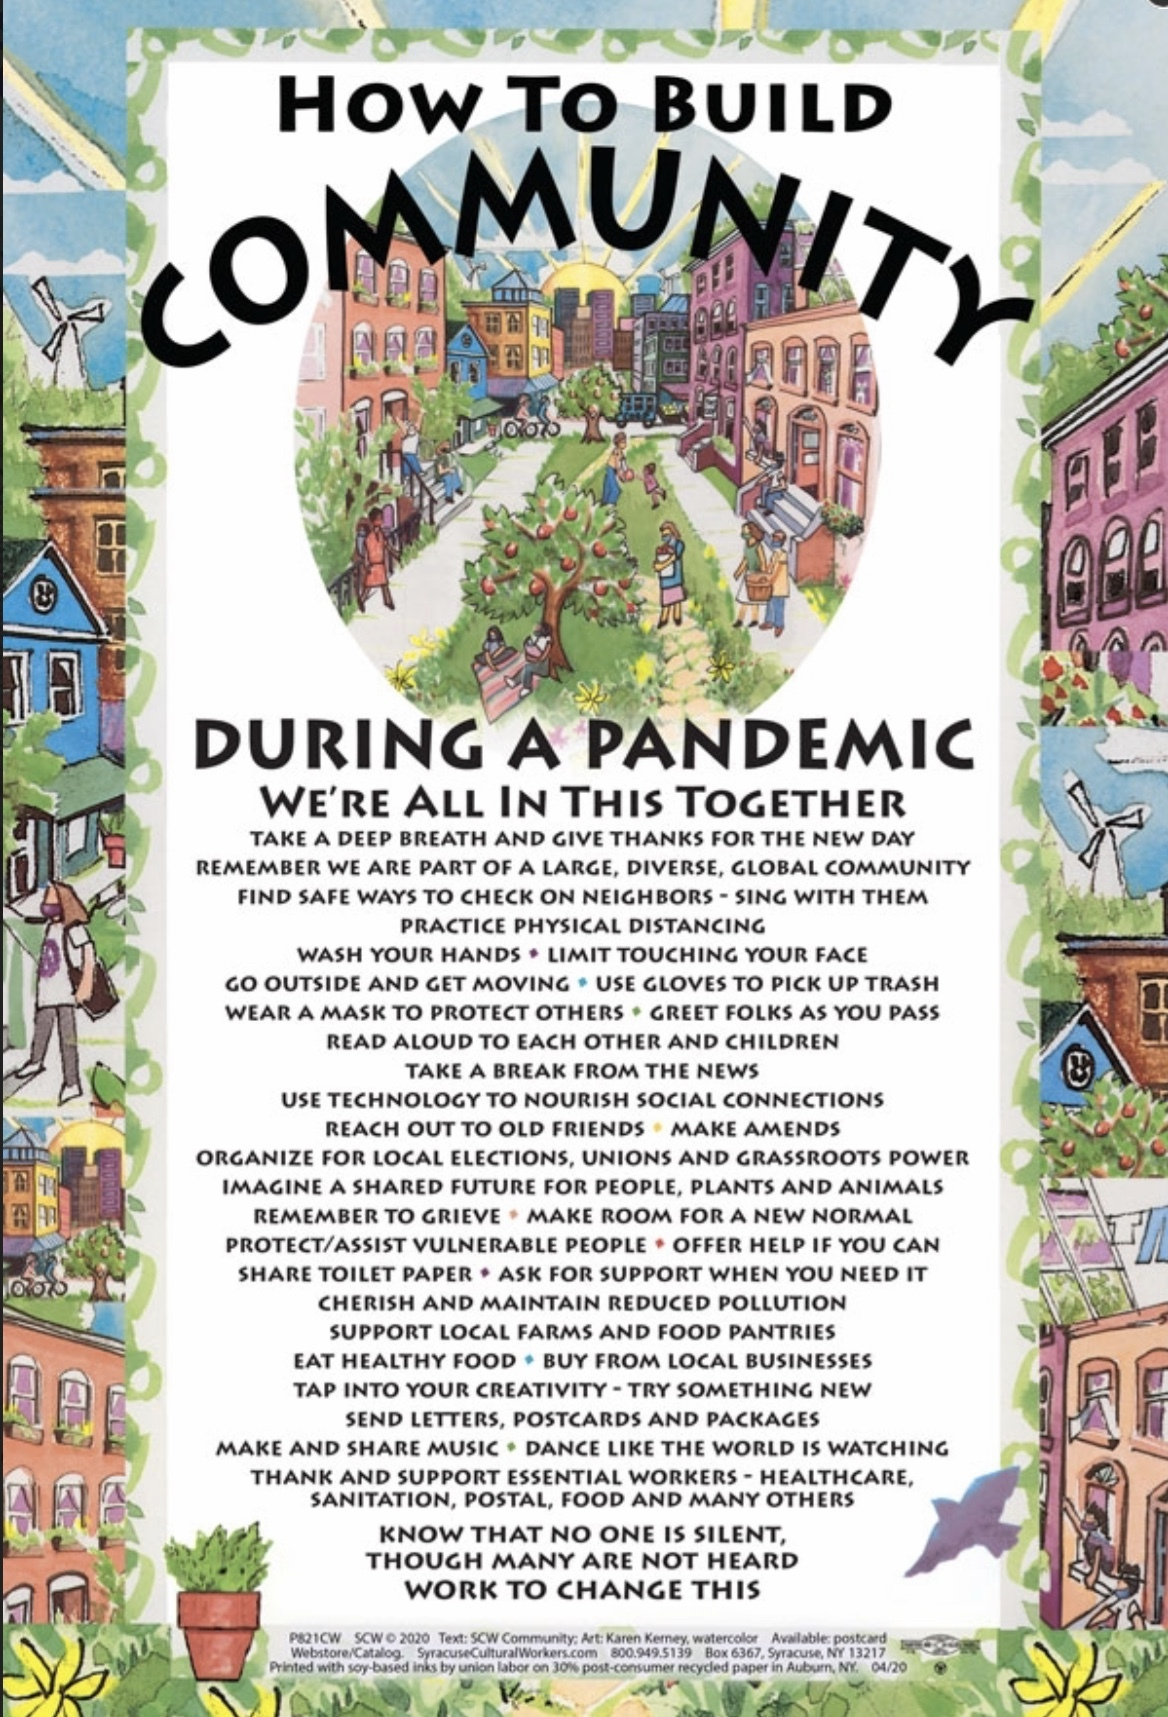 How to Build a community during a pandemic